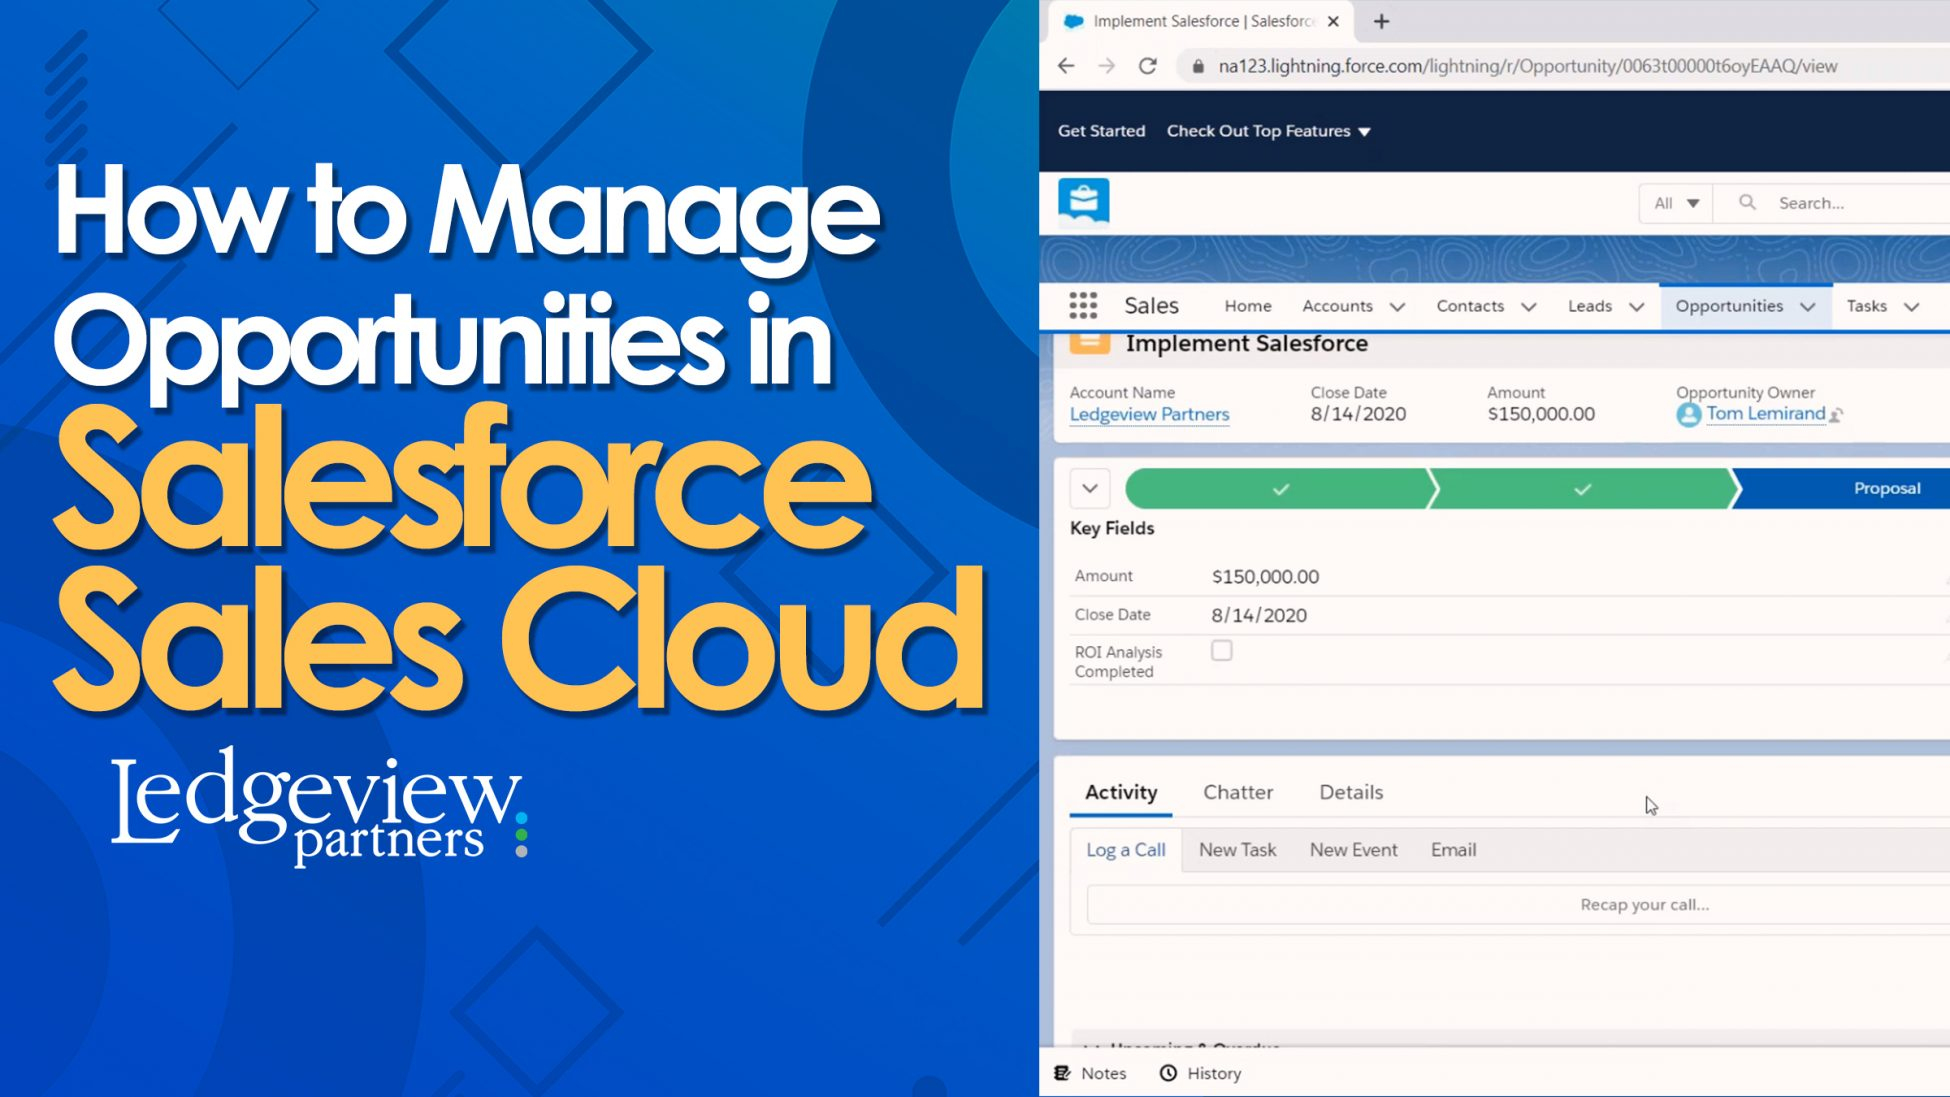 How to Manage Opportunities in Salesforce Sales Cloud